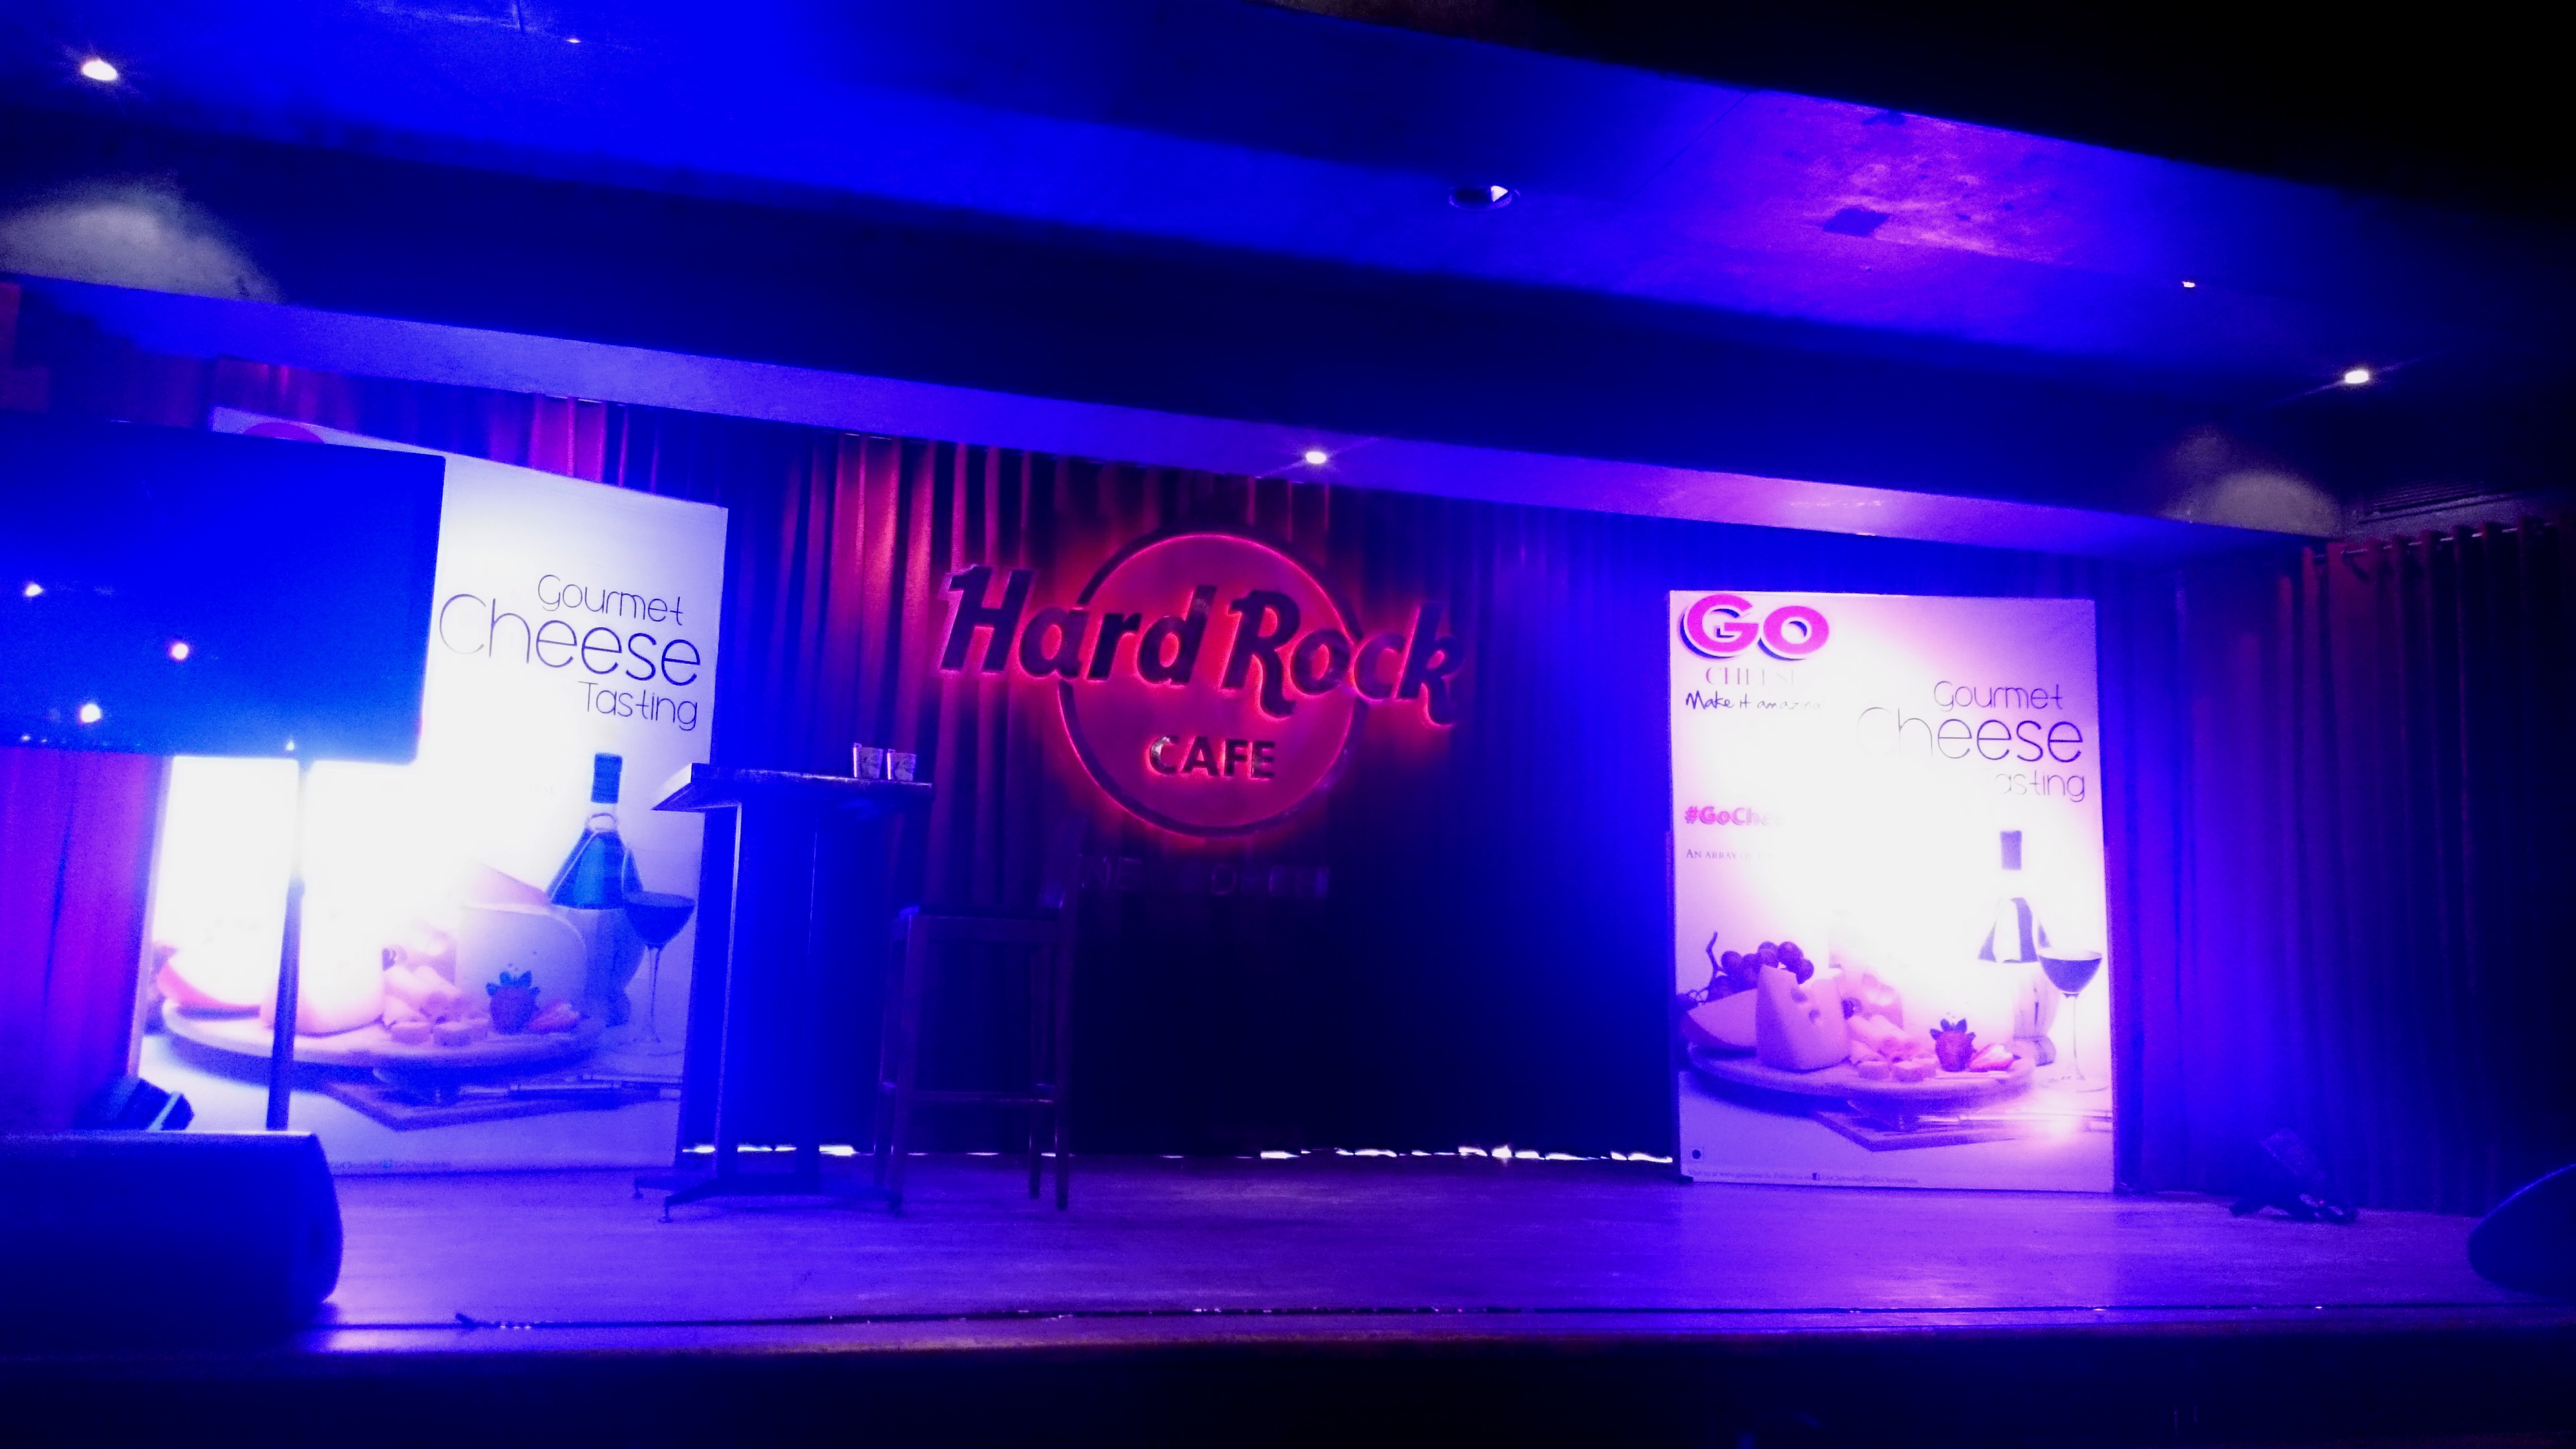 Go Cheese Tasting event, Hard Rock cafe, Delhi